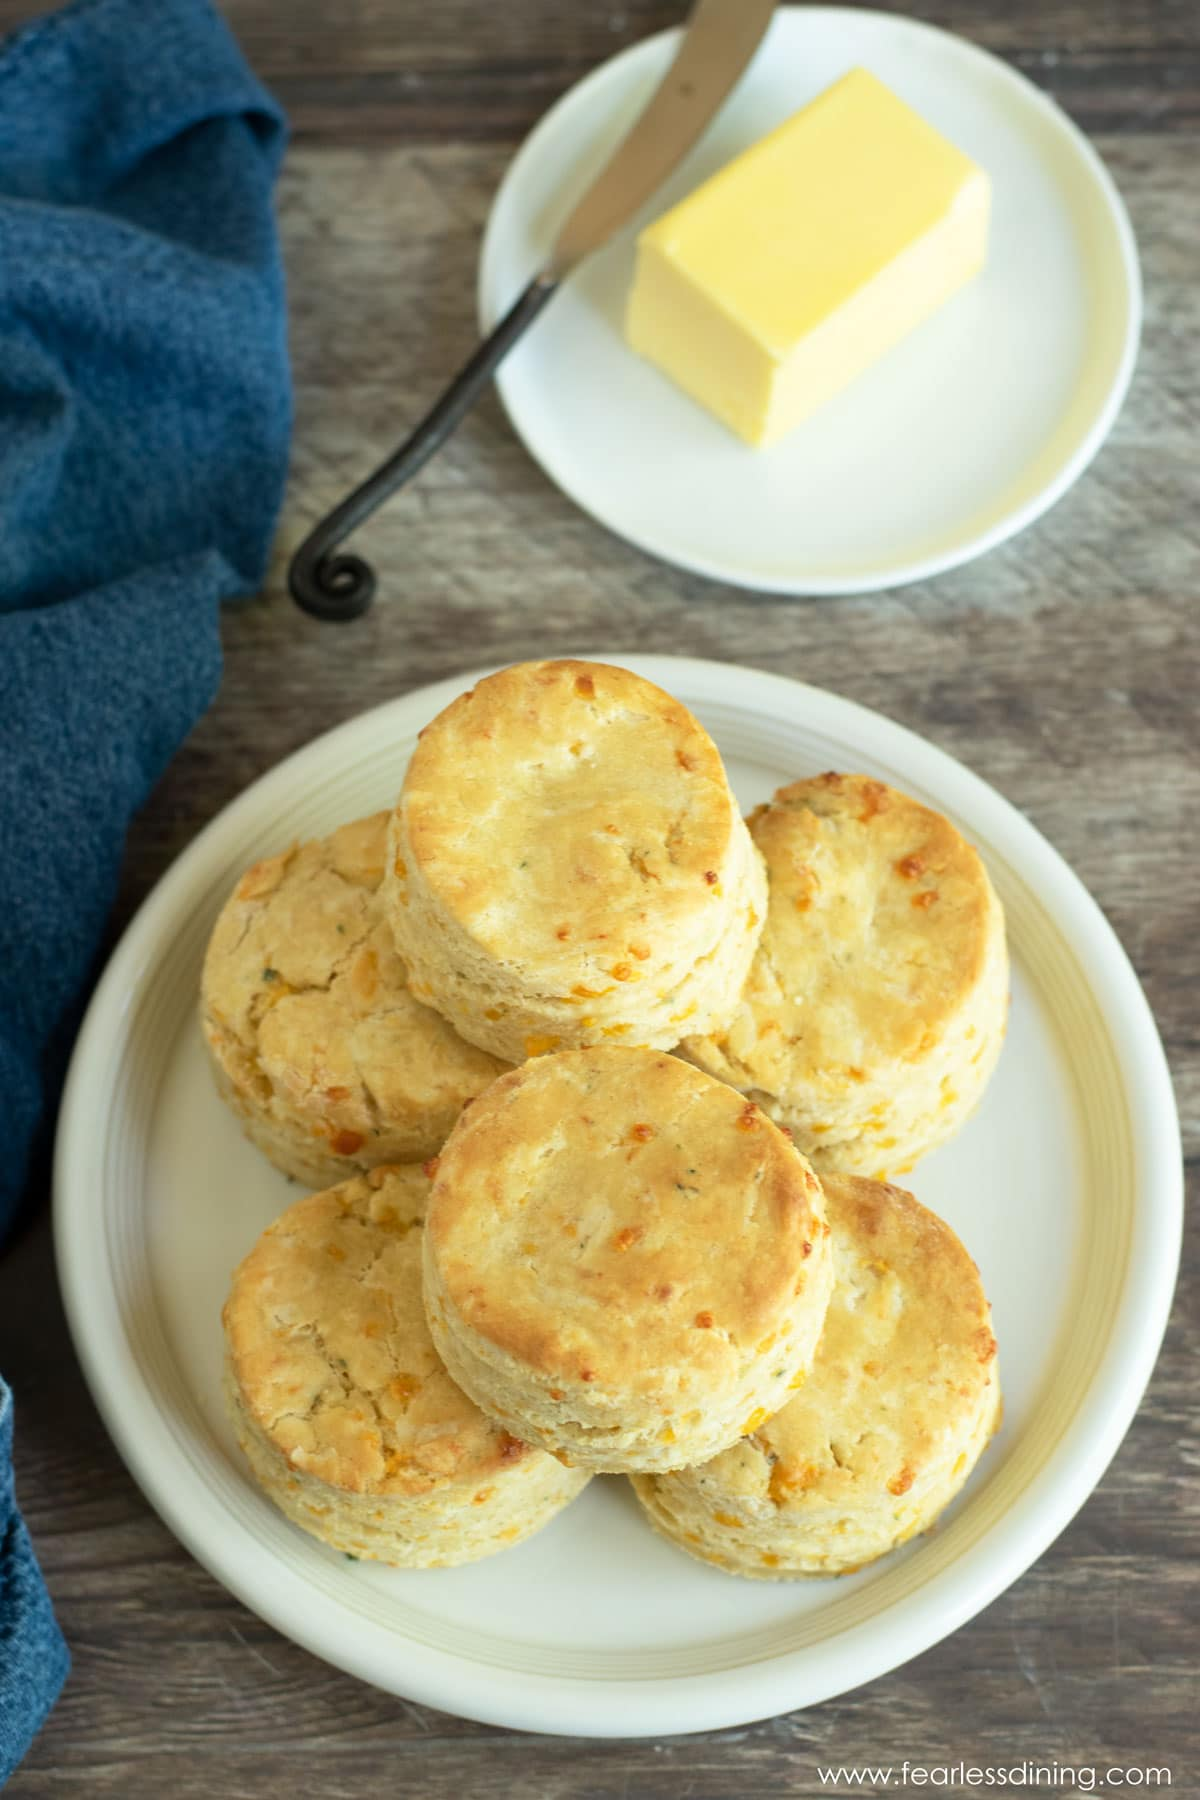 a top view of a plate full of biscuits